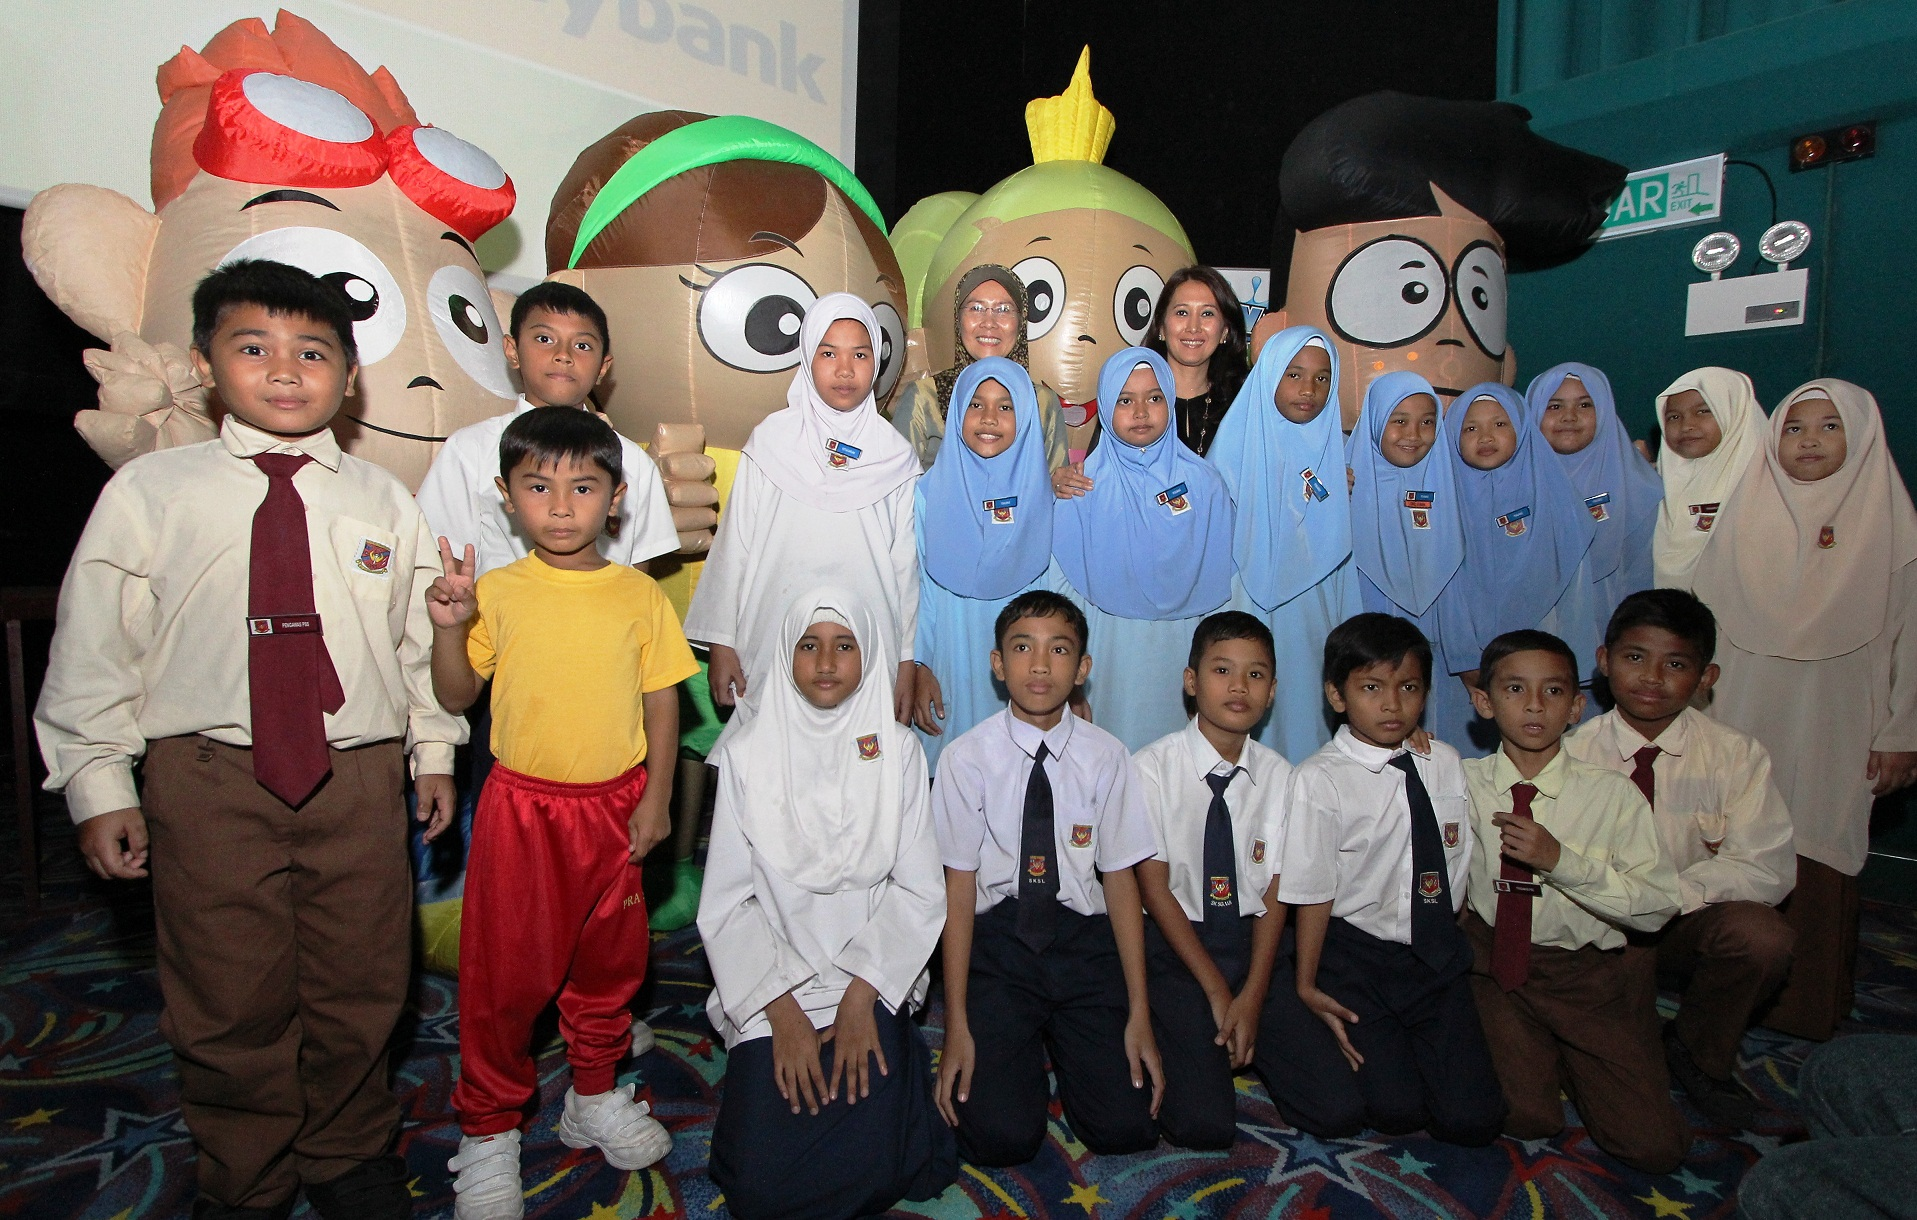 Ministry of Education launched Cashville Kidz Season 2